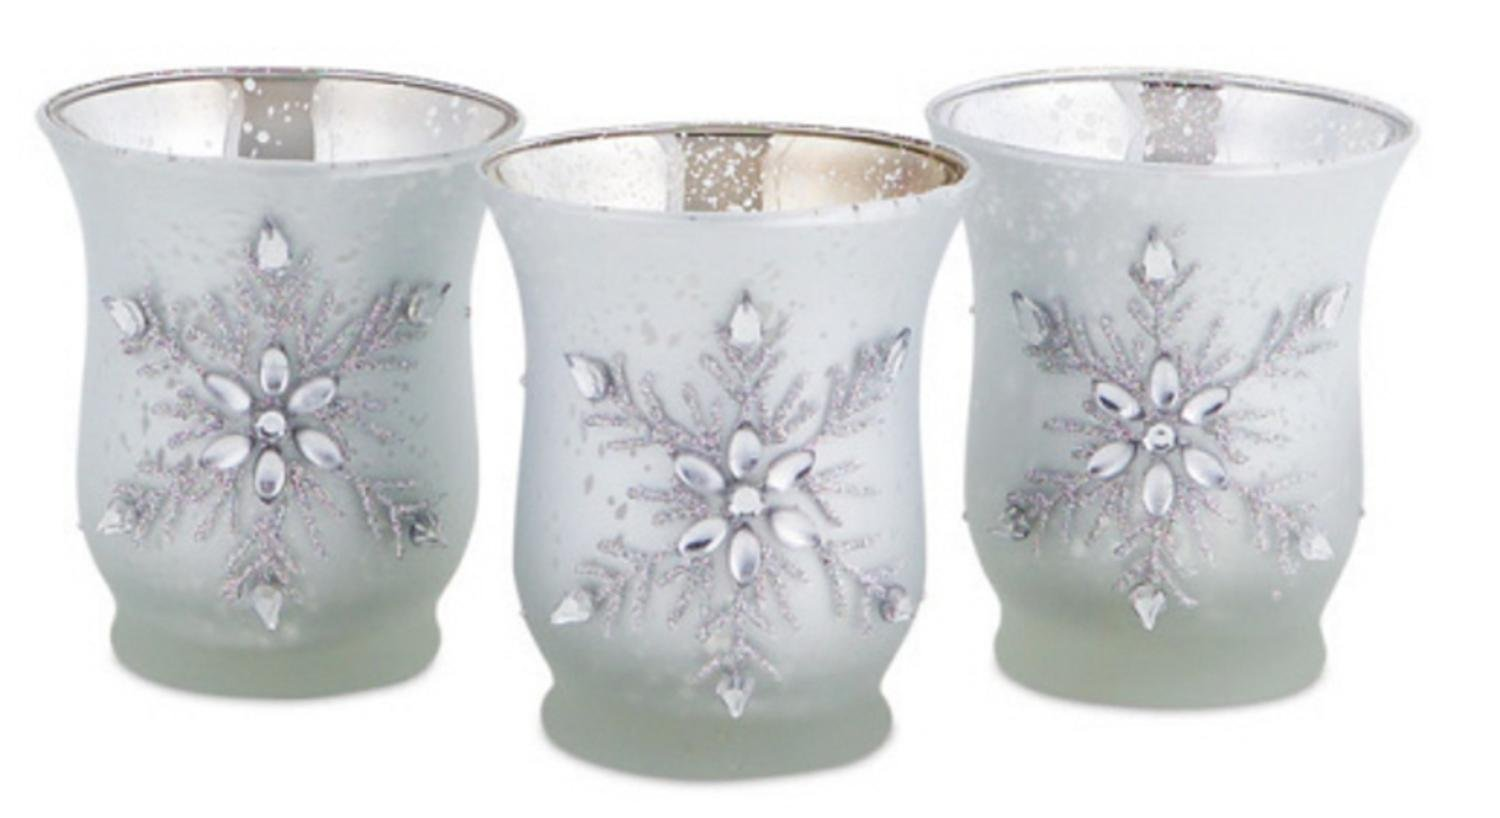 18 Matte Silver Glass Jeweled Snowflake Christmas Votive Candle Holders 3.5''